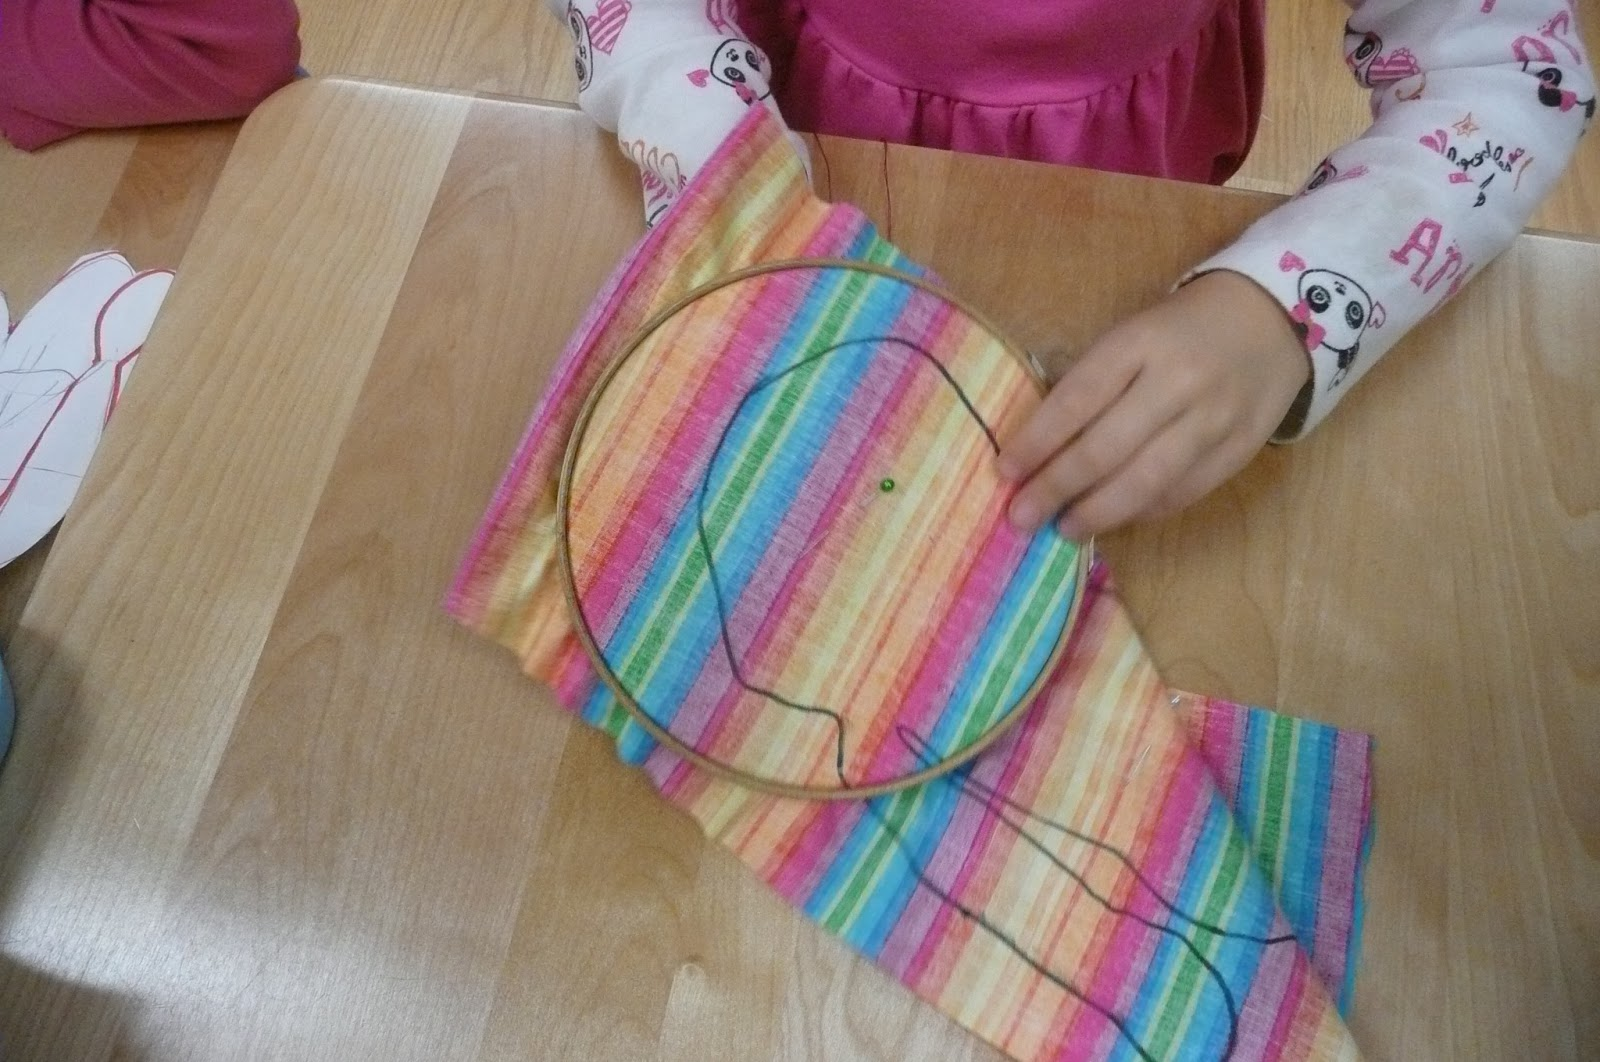 Stitches and sewing classes for kids